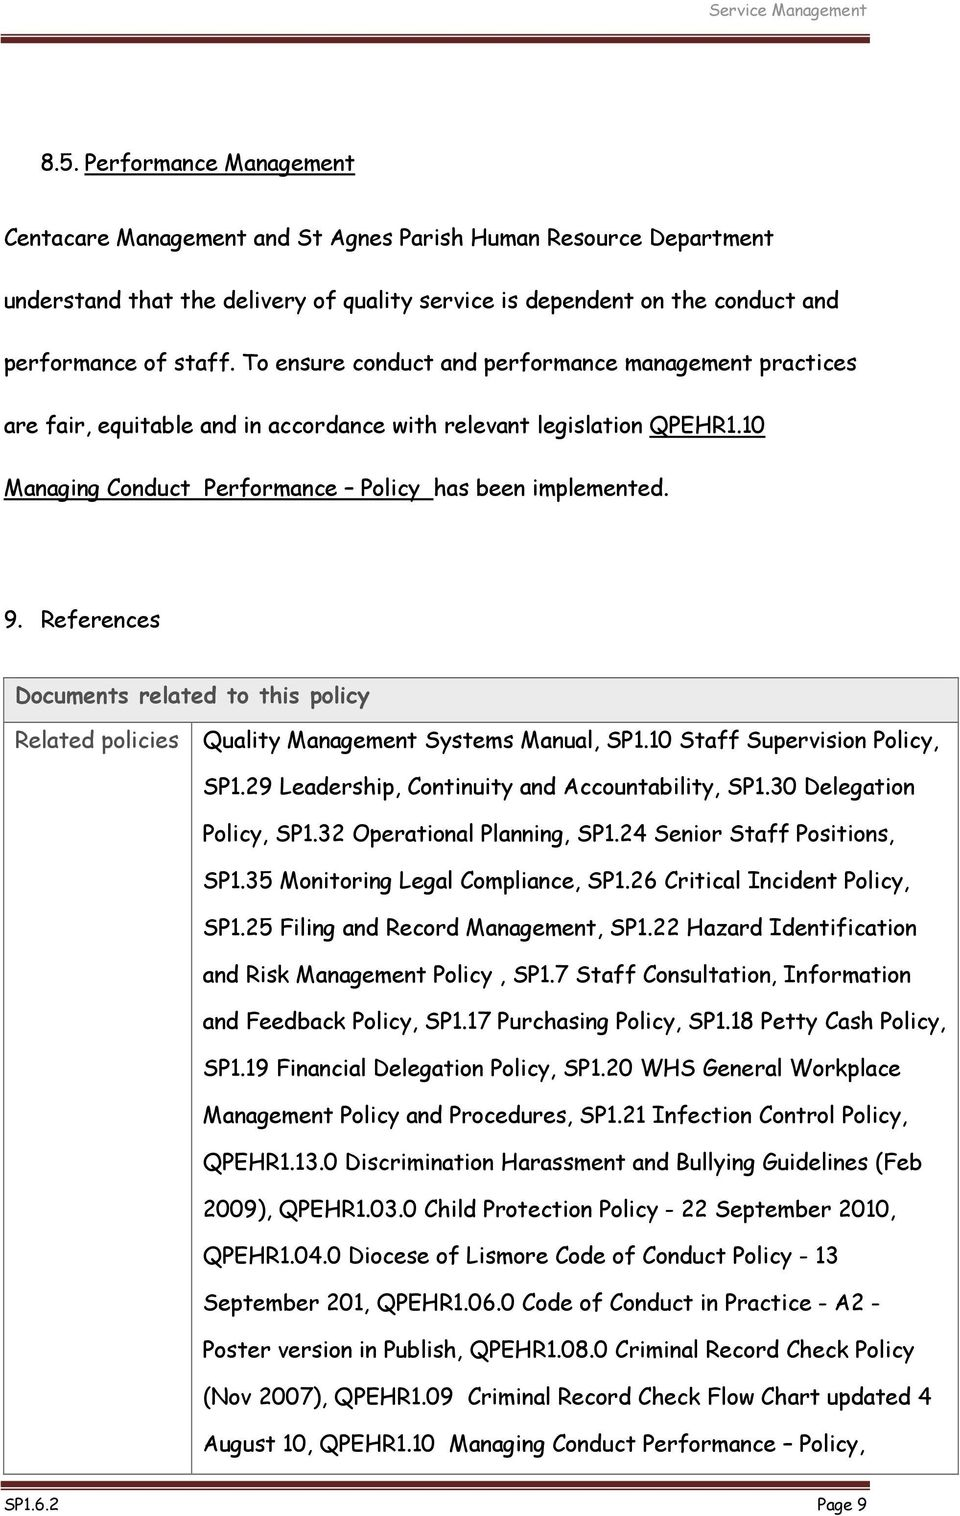 References Documents related to this policy Related policies Quality Management Systems Manual, SP1.10 Staff Supervision Policy, SP1.29 Leadership, Continuity and Accountability, SP1.